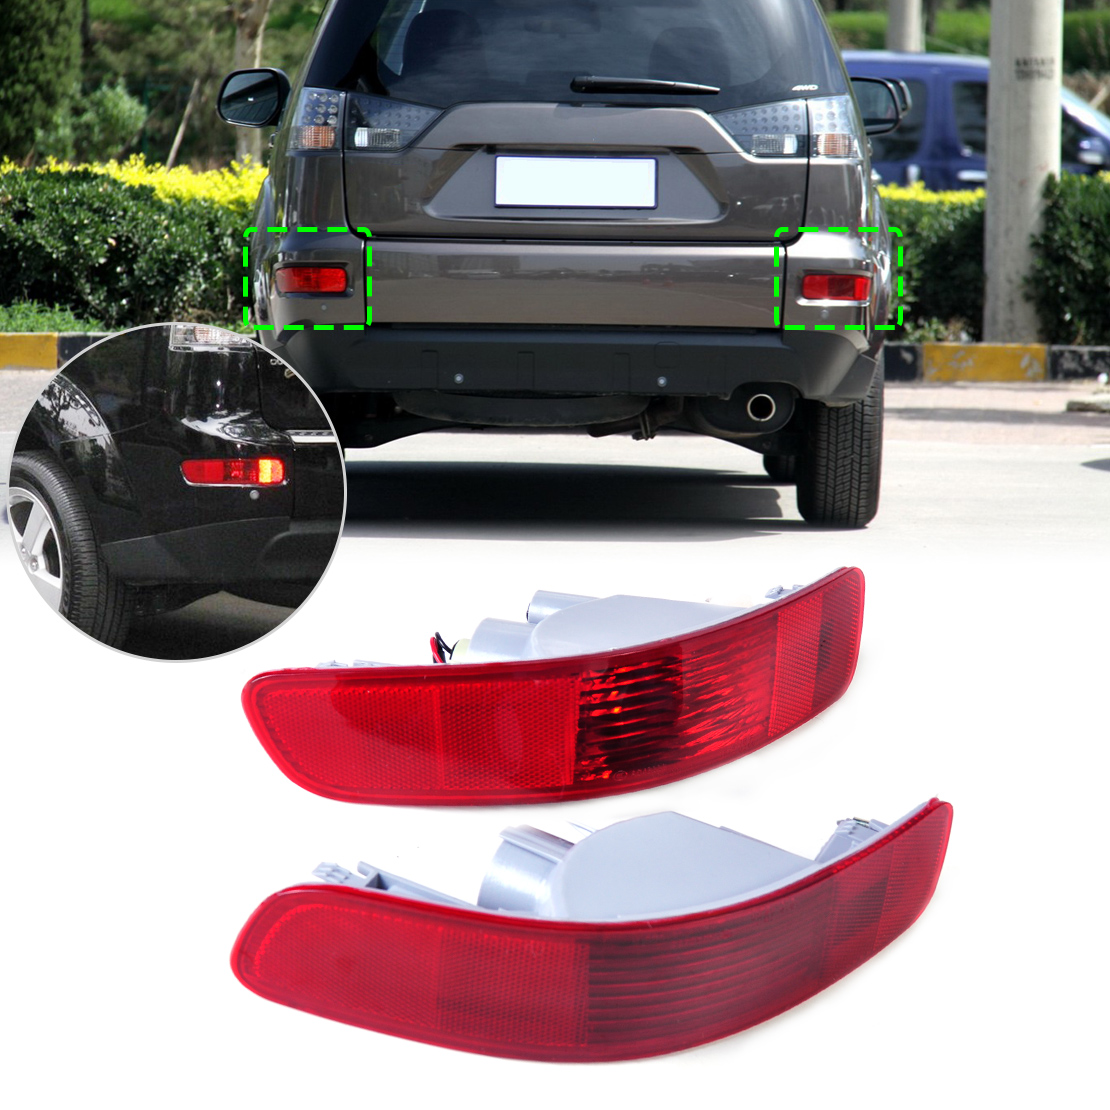 beler 2x Rear Right Left Tail Fog Light Lamp Reflector 8352A005 8337A015 for Mitsubishi Outlander 2007 2008 2009 2010 2011 2012 beler new high quality abs plastic new front left fog light lamp 9006 12v 51w replacement ma2592113 for mazda 3 2007 2008 2009